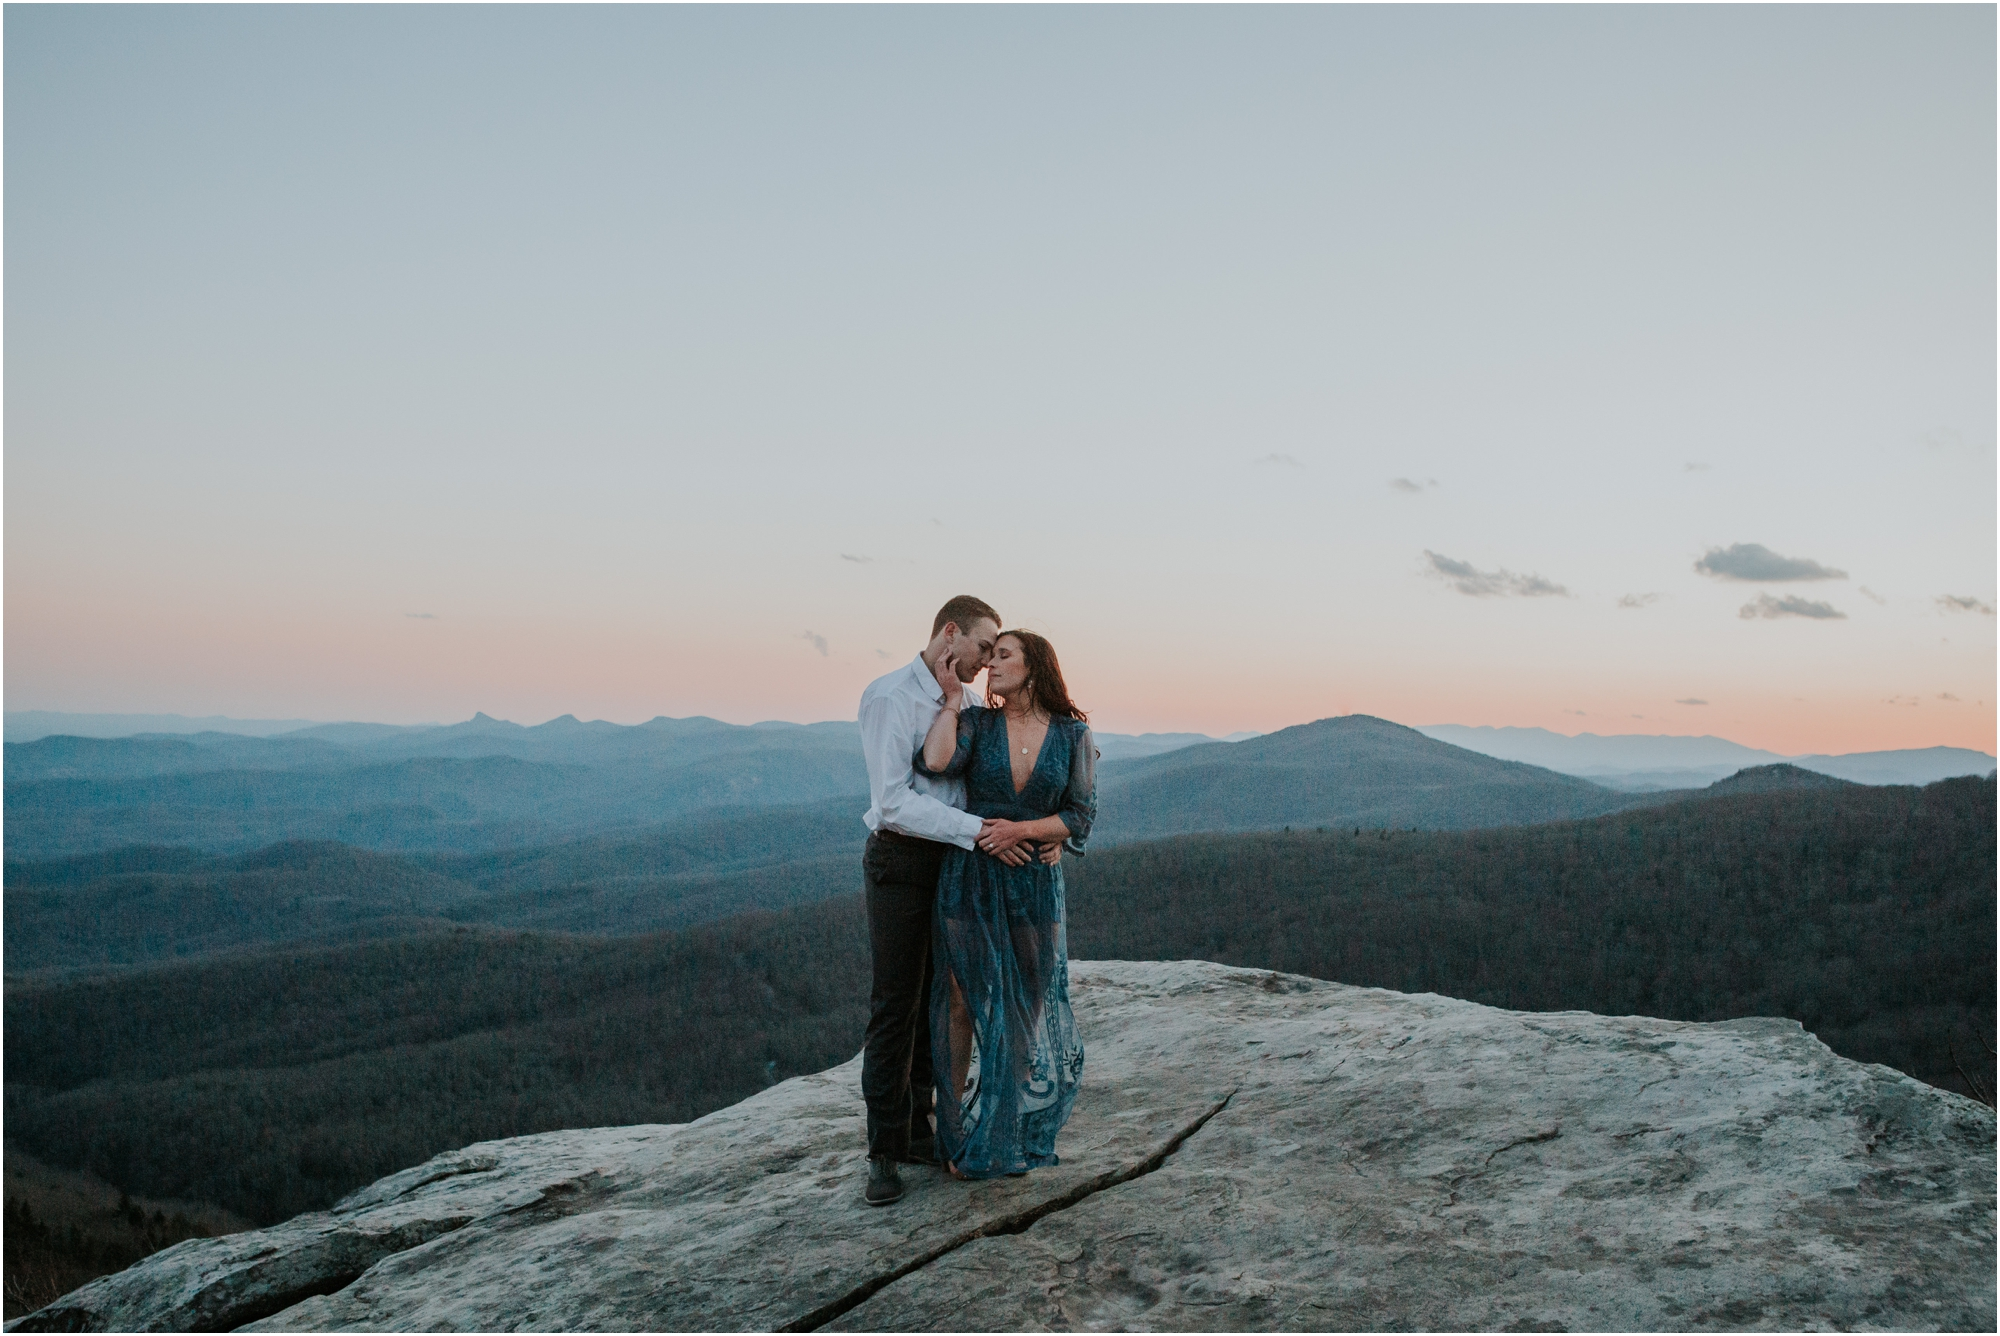 blue-ridge-parkway-engagement-session-north-carolina-boone-blowing-rock-northeast-tennessee-katy-sergent-photography_0036.jpg